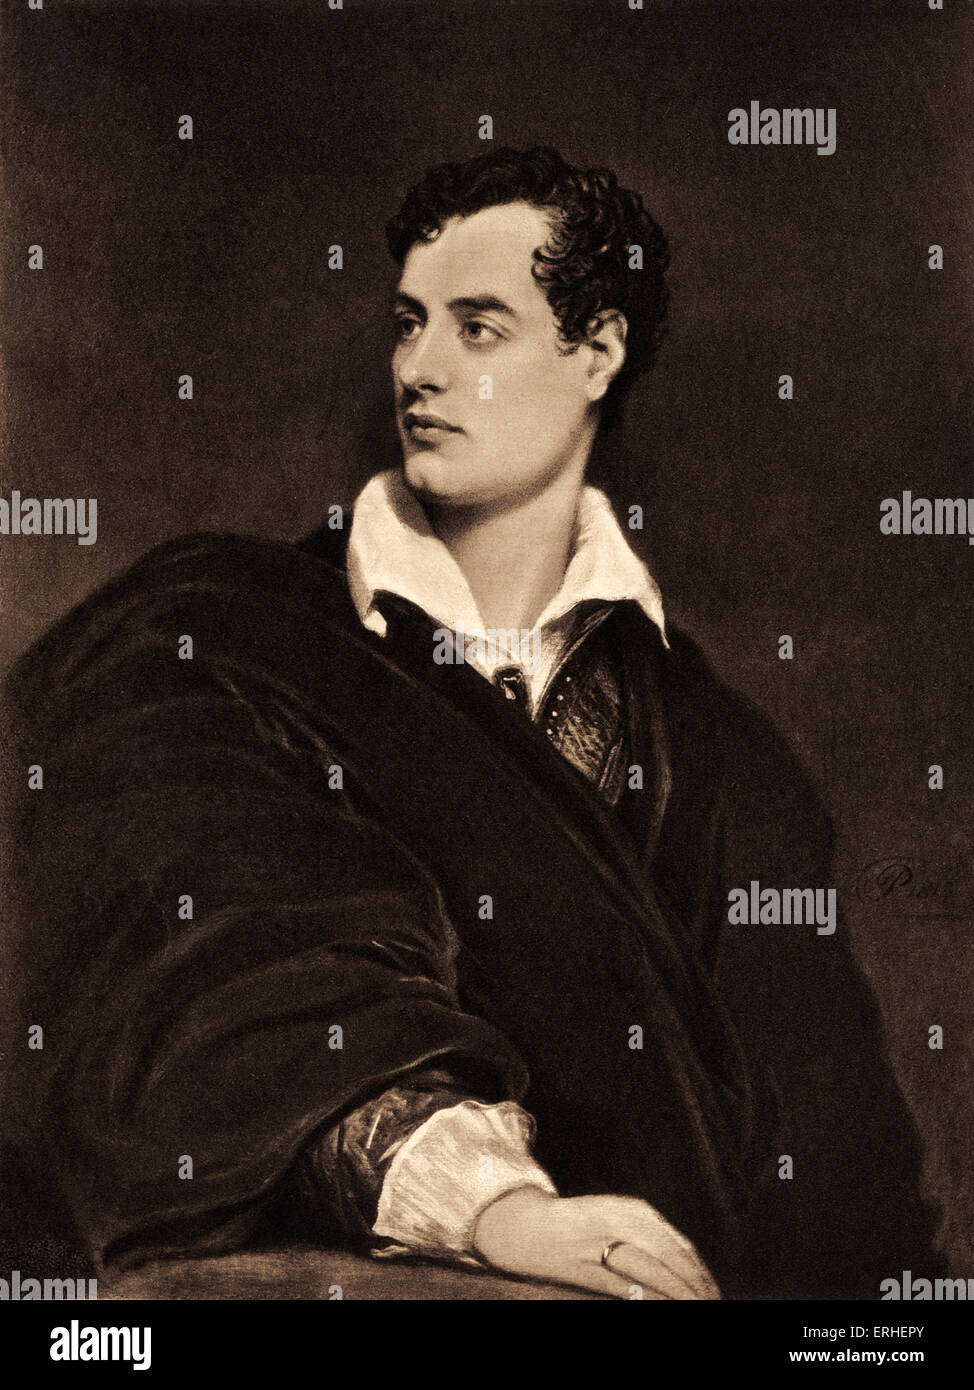 Lord Byron, portrait. British poet 1788-1824. After the portrait by T. Phillips . - Stock Image